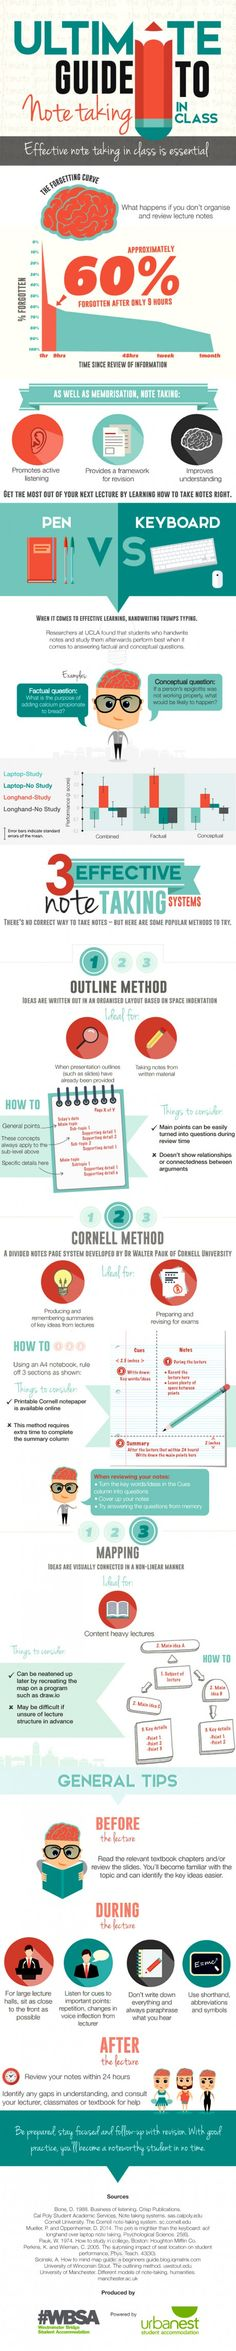 The Ultimate Guide To Note-Taking In Class